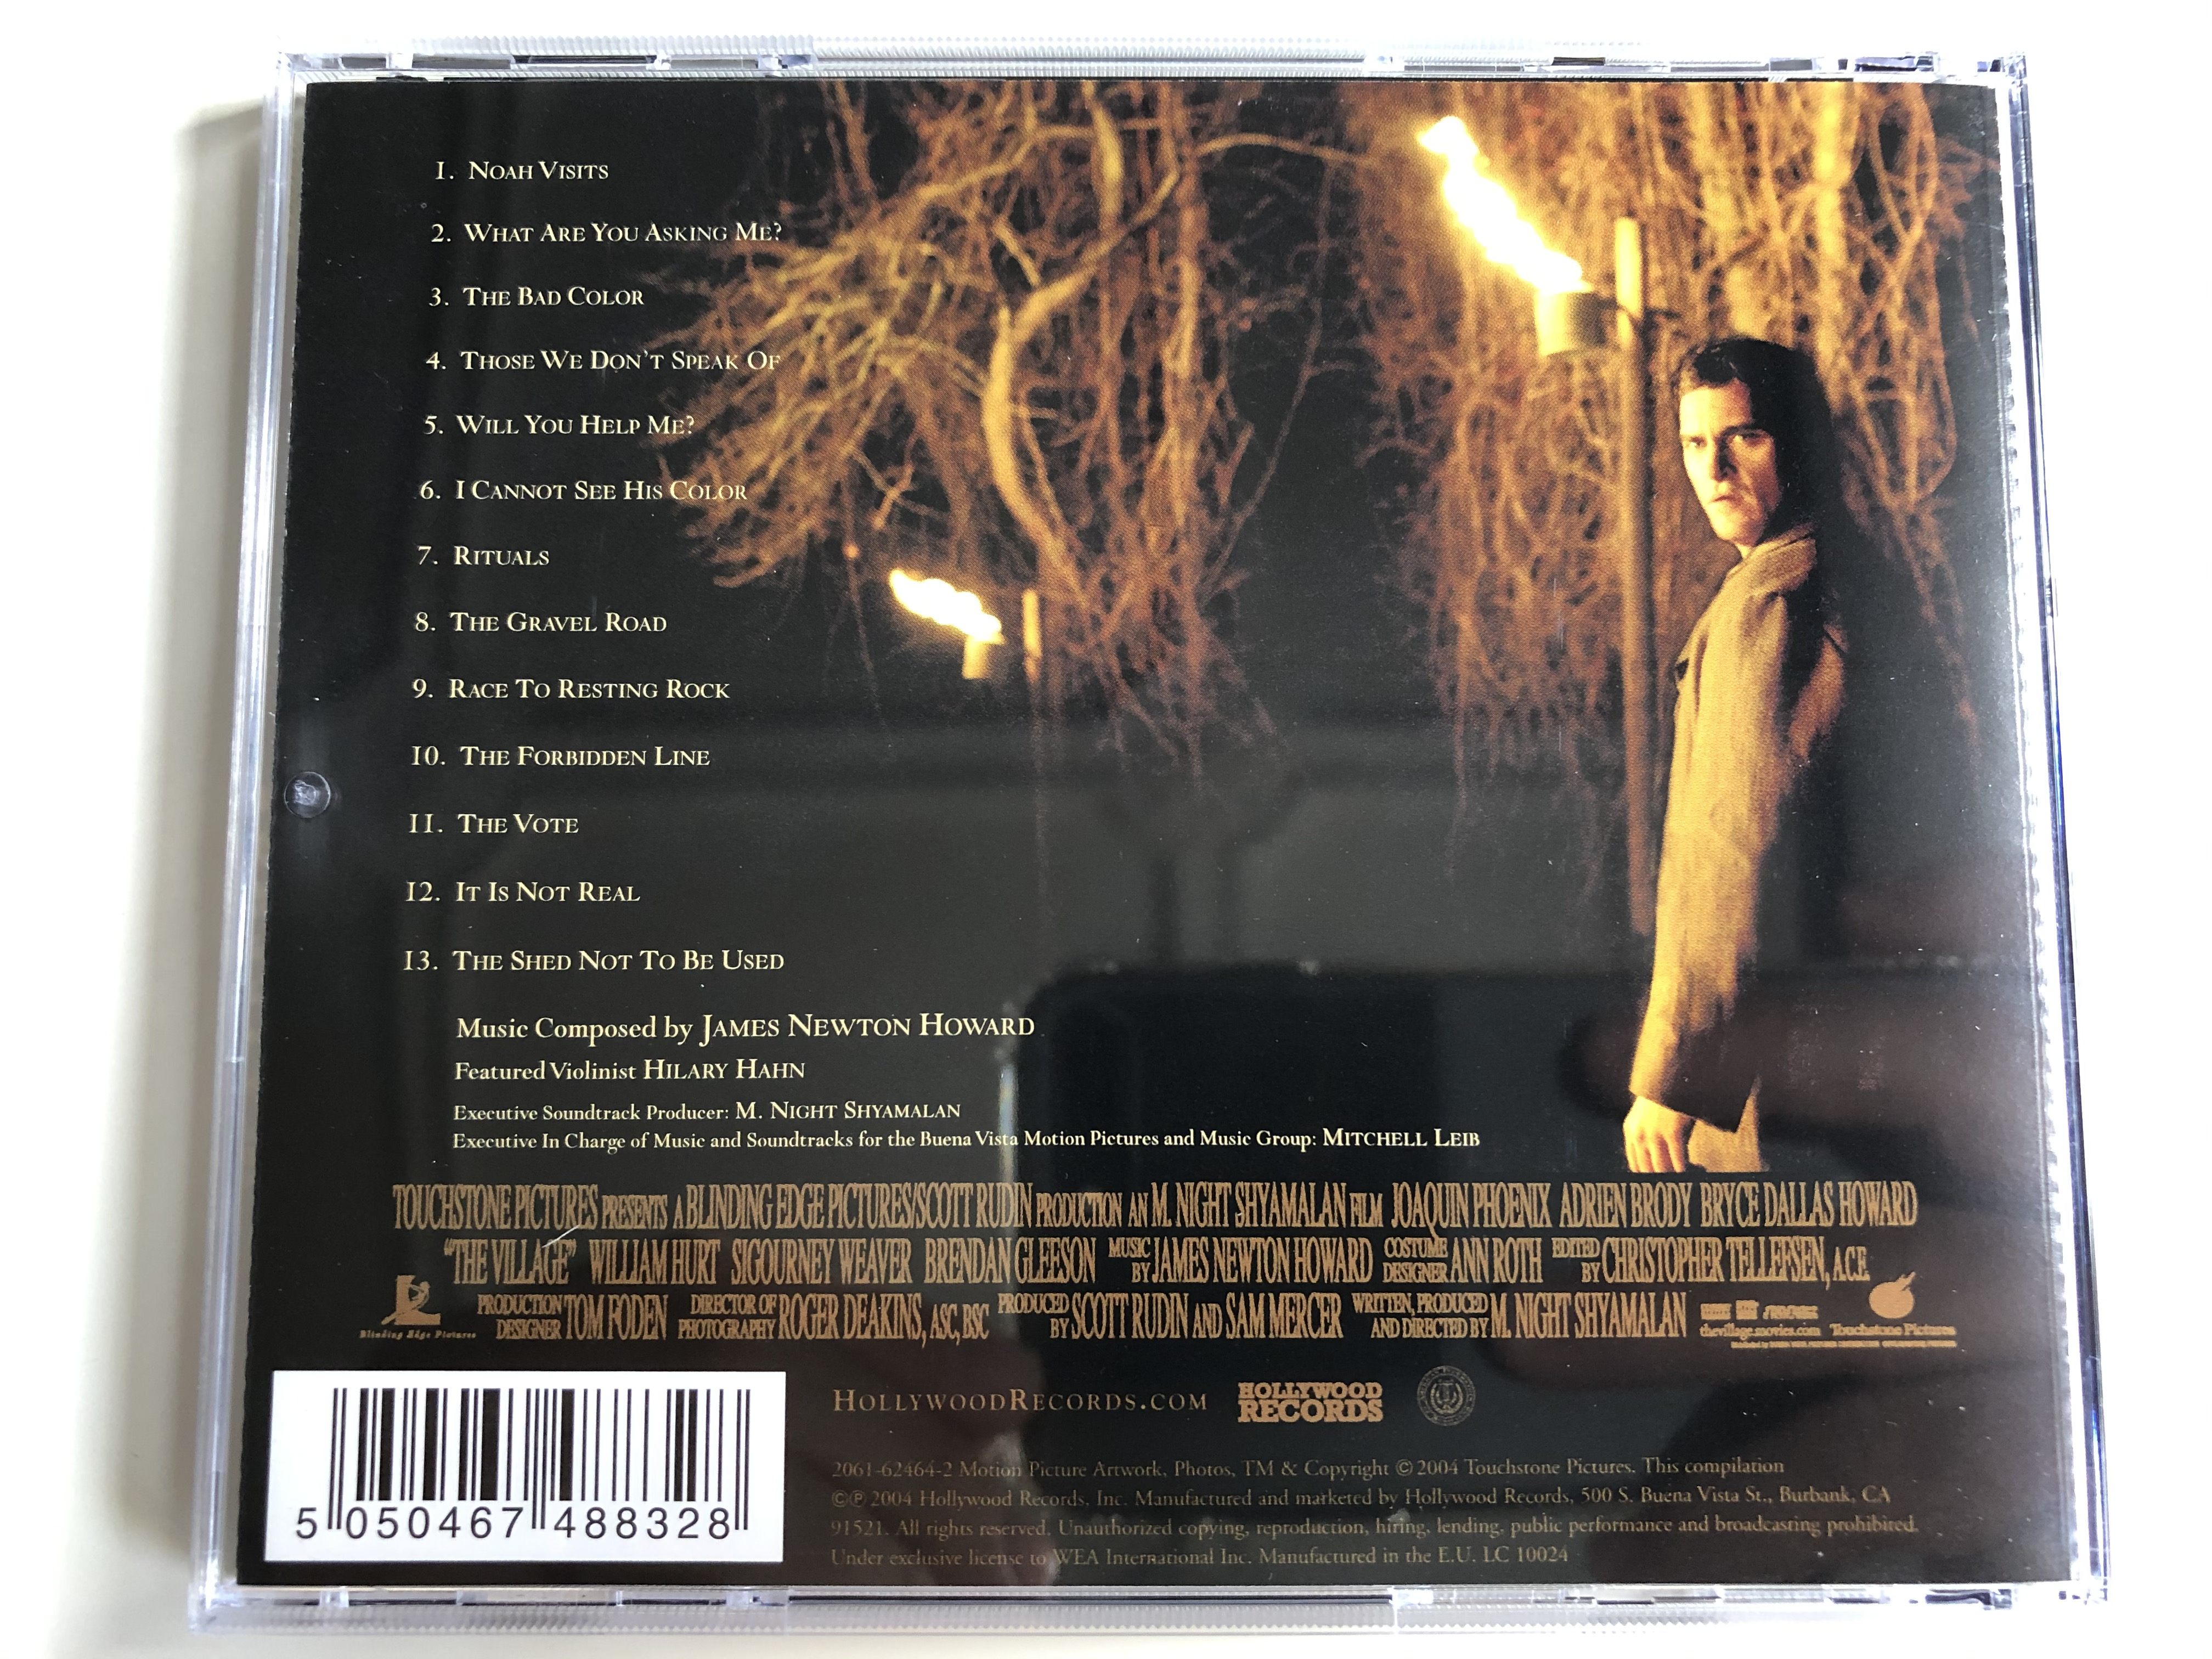 m.-night-shyamalan-s-the-village-music-composed-by-james-newton-howard-featured-violinist-hilary-hahn-hollywood-records-audio-cd-2004-5050467-4883-2-8-6-.jpg